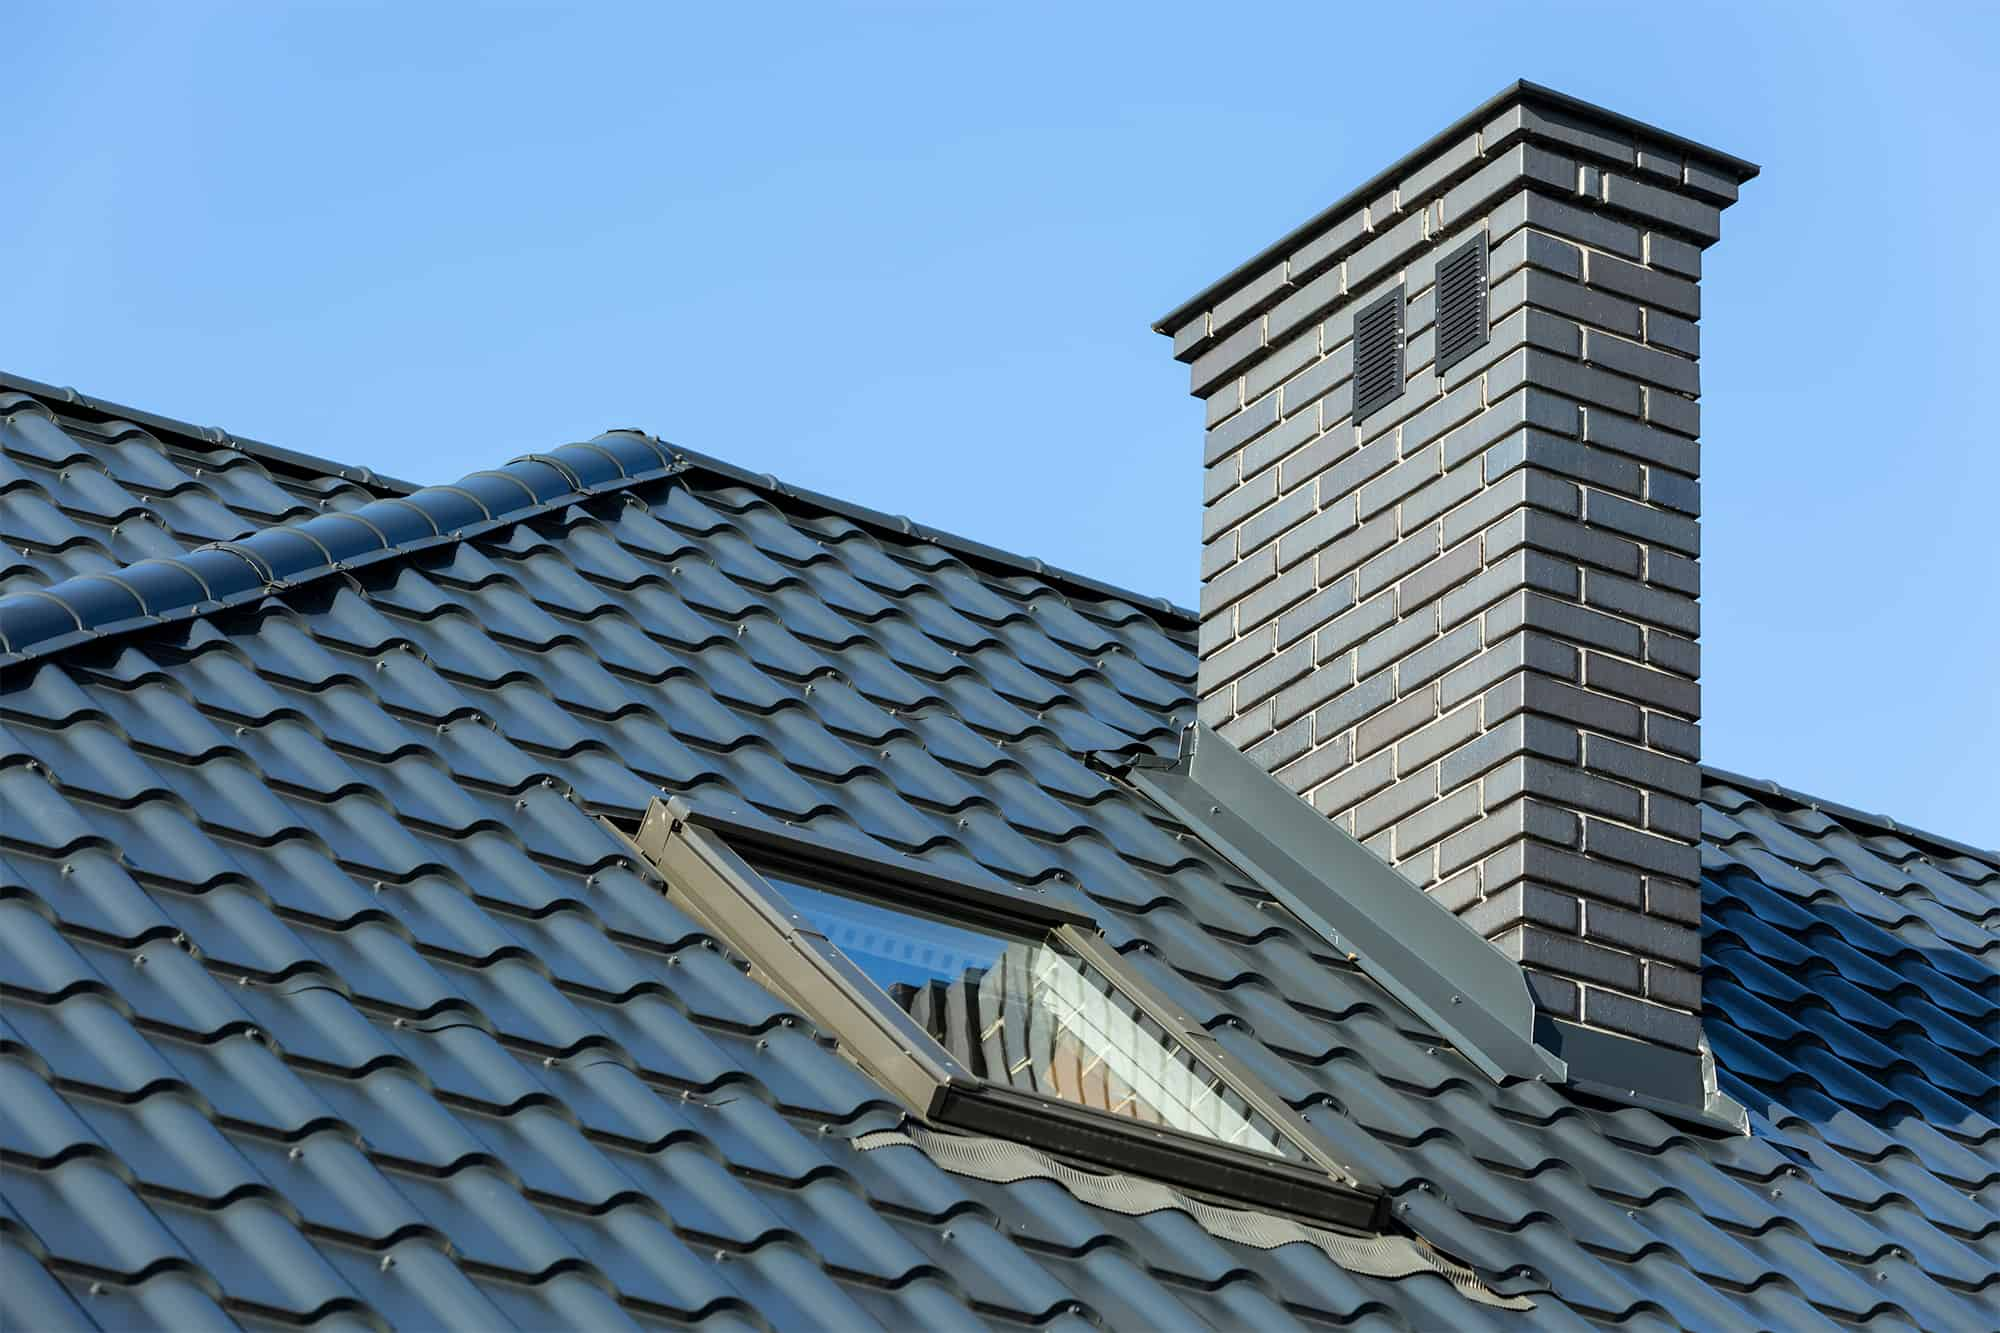 Chimney Company West Sayville Ny Chimney King